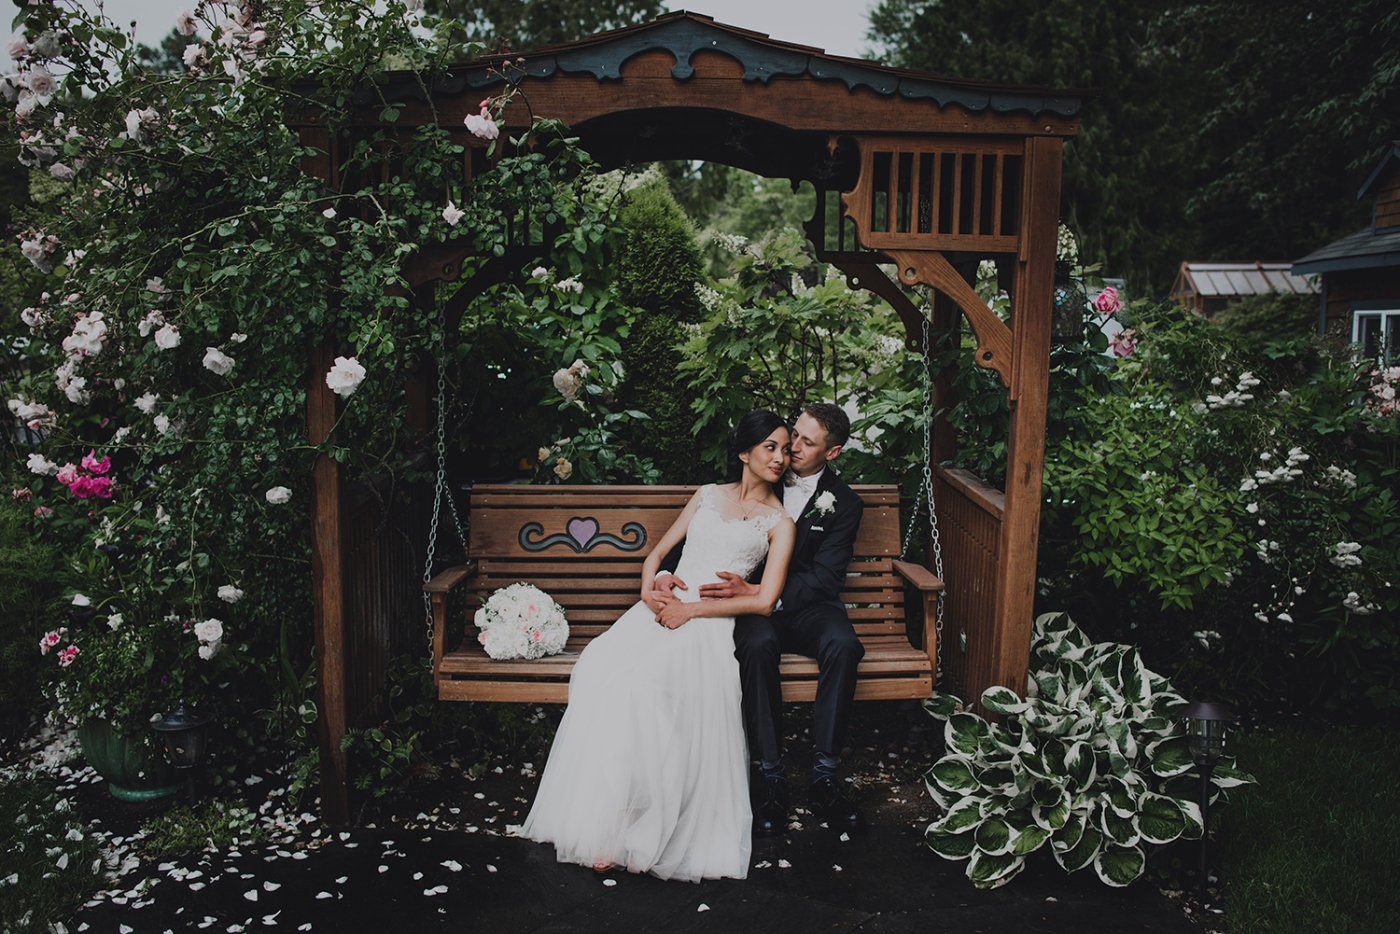 Jane_Speleers_photography_Seattle_Wedding_at_Wild_Rose_estate_2016_Julienne_and_Brian_bride_groom_ DSC_0466